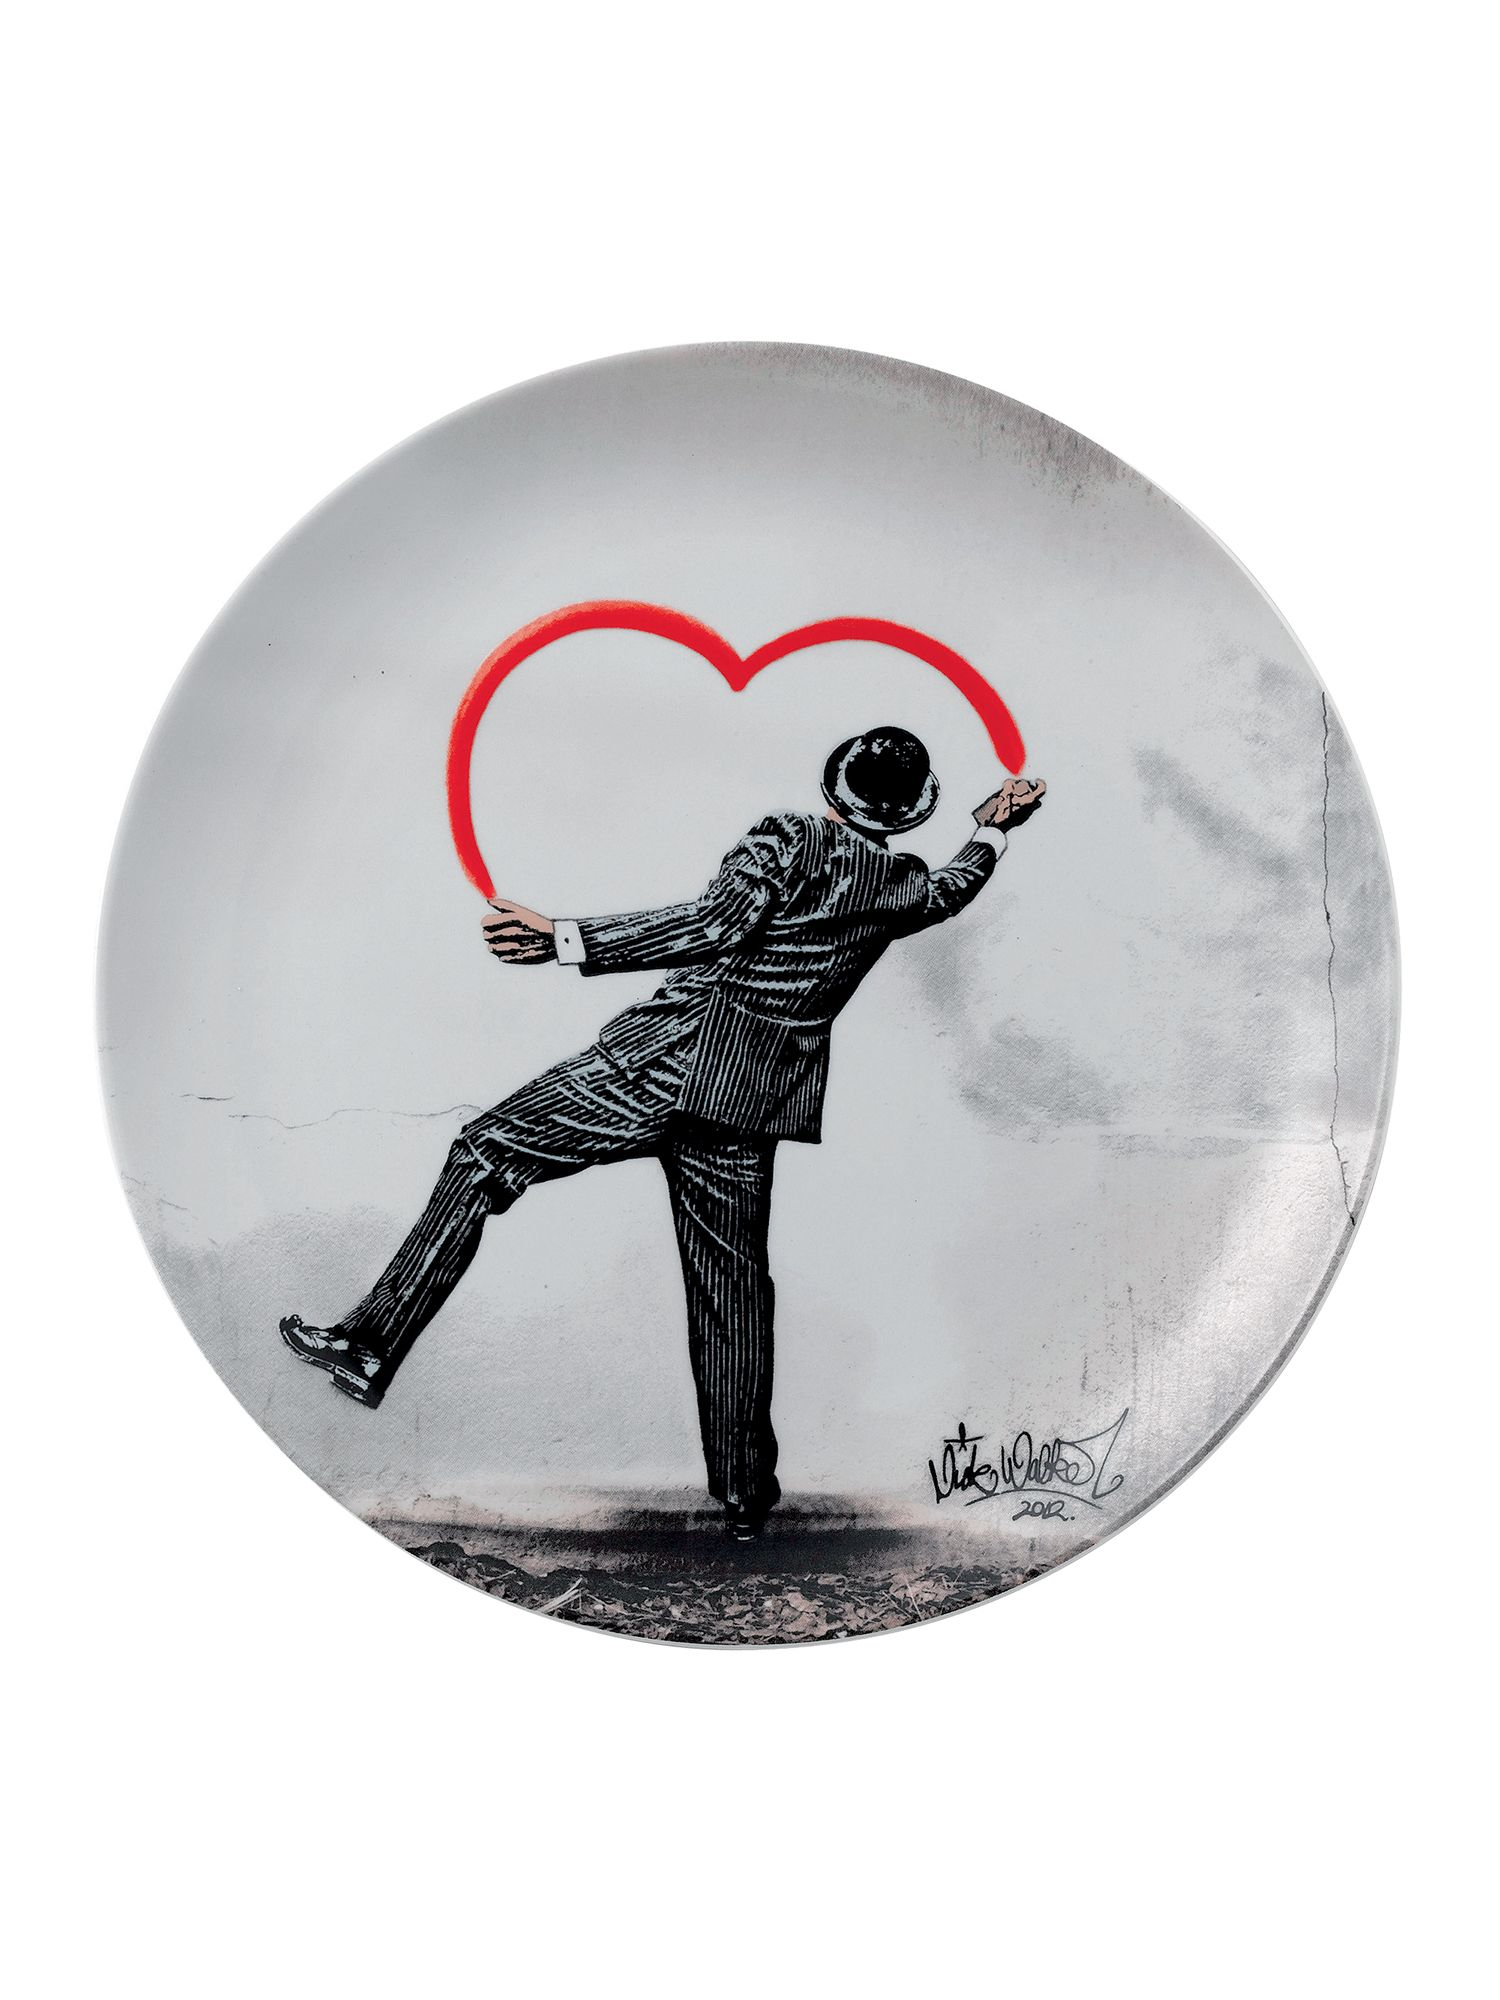 Limited edition nick walker ceramic plate love va